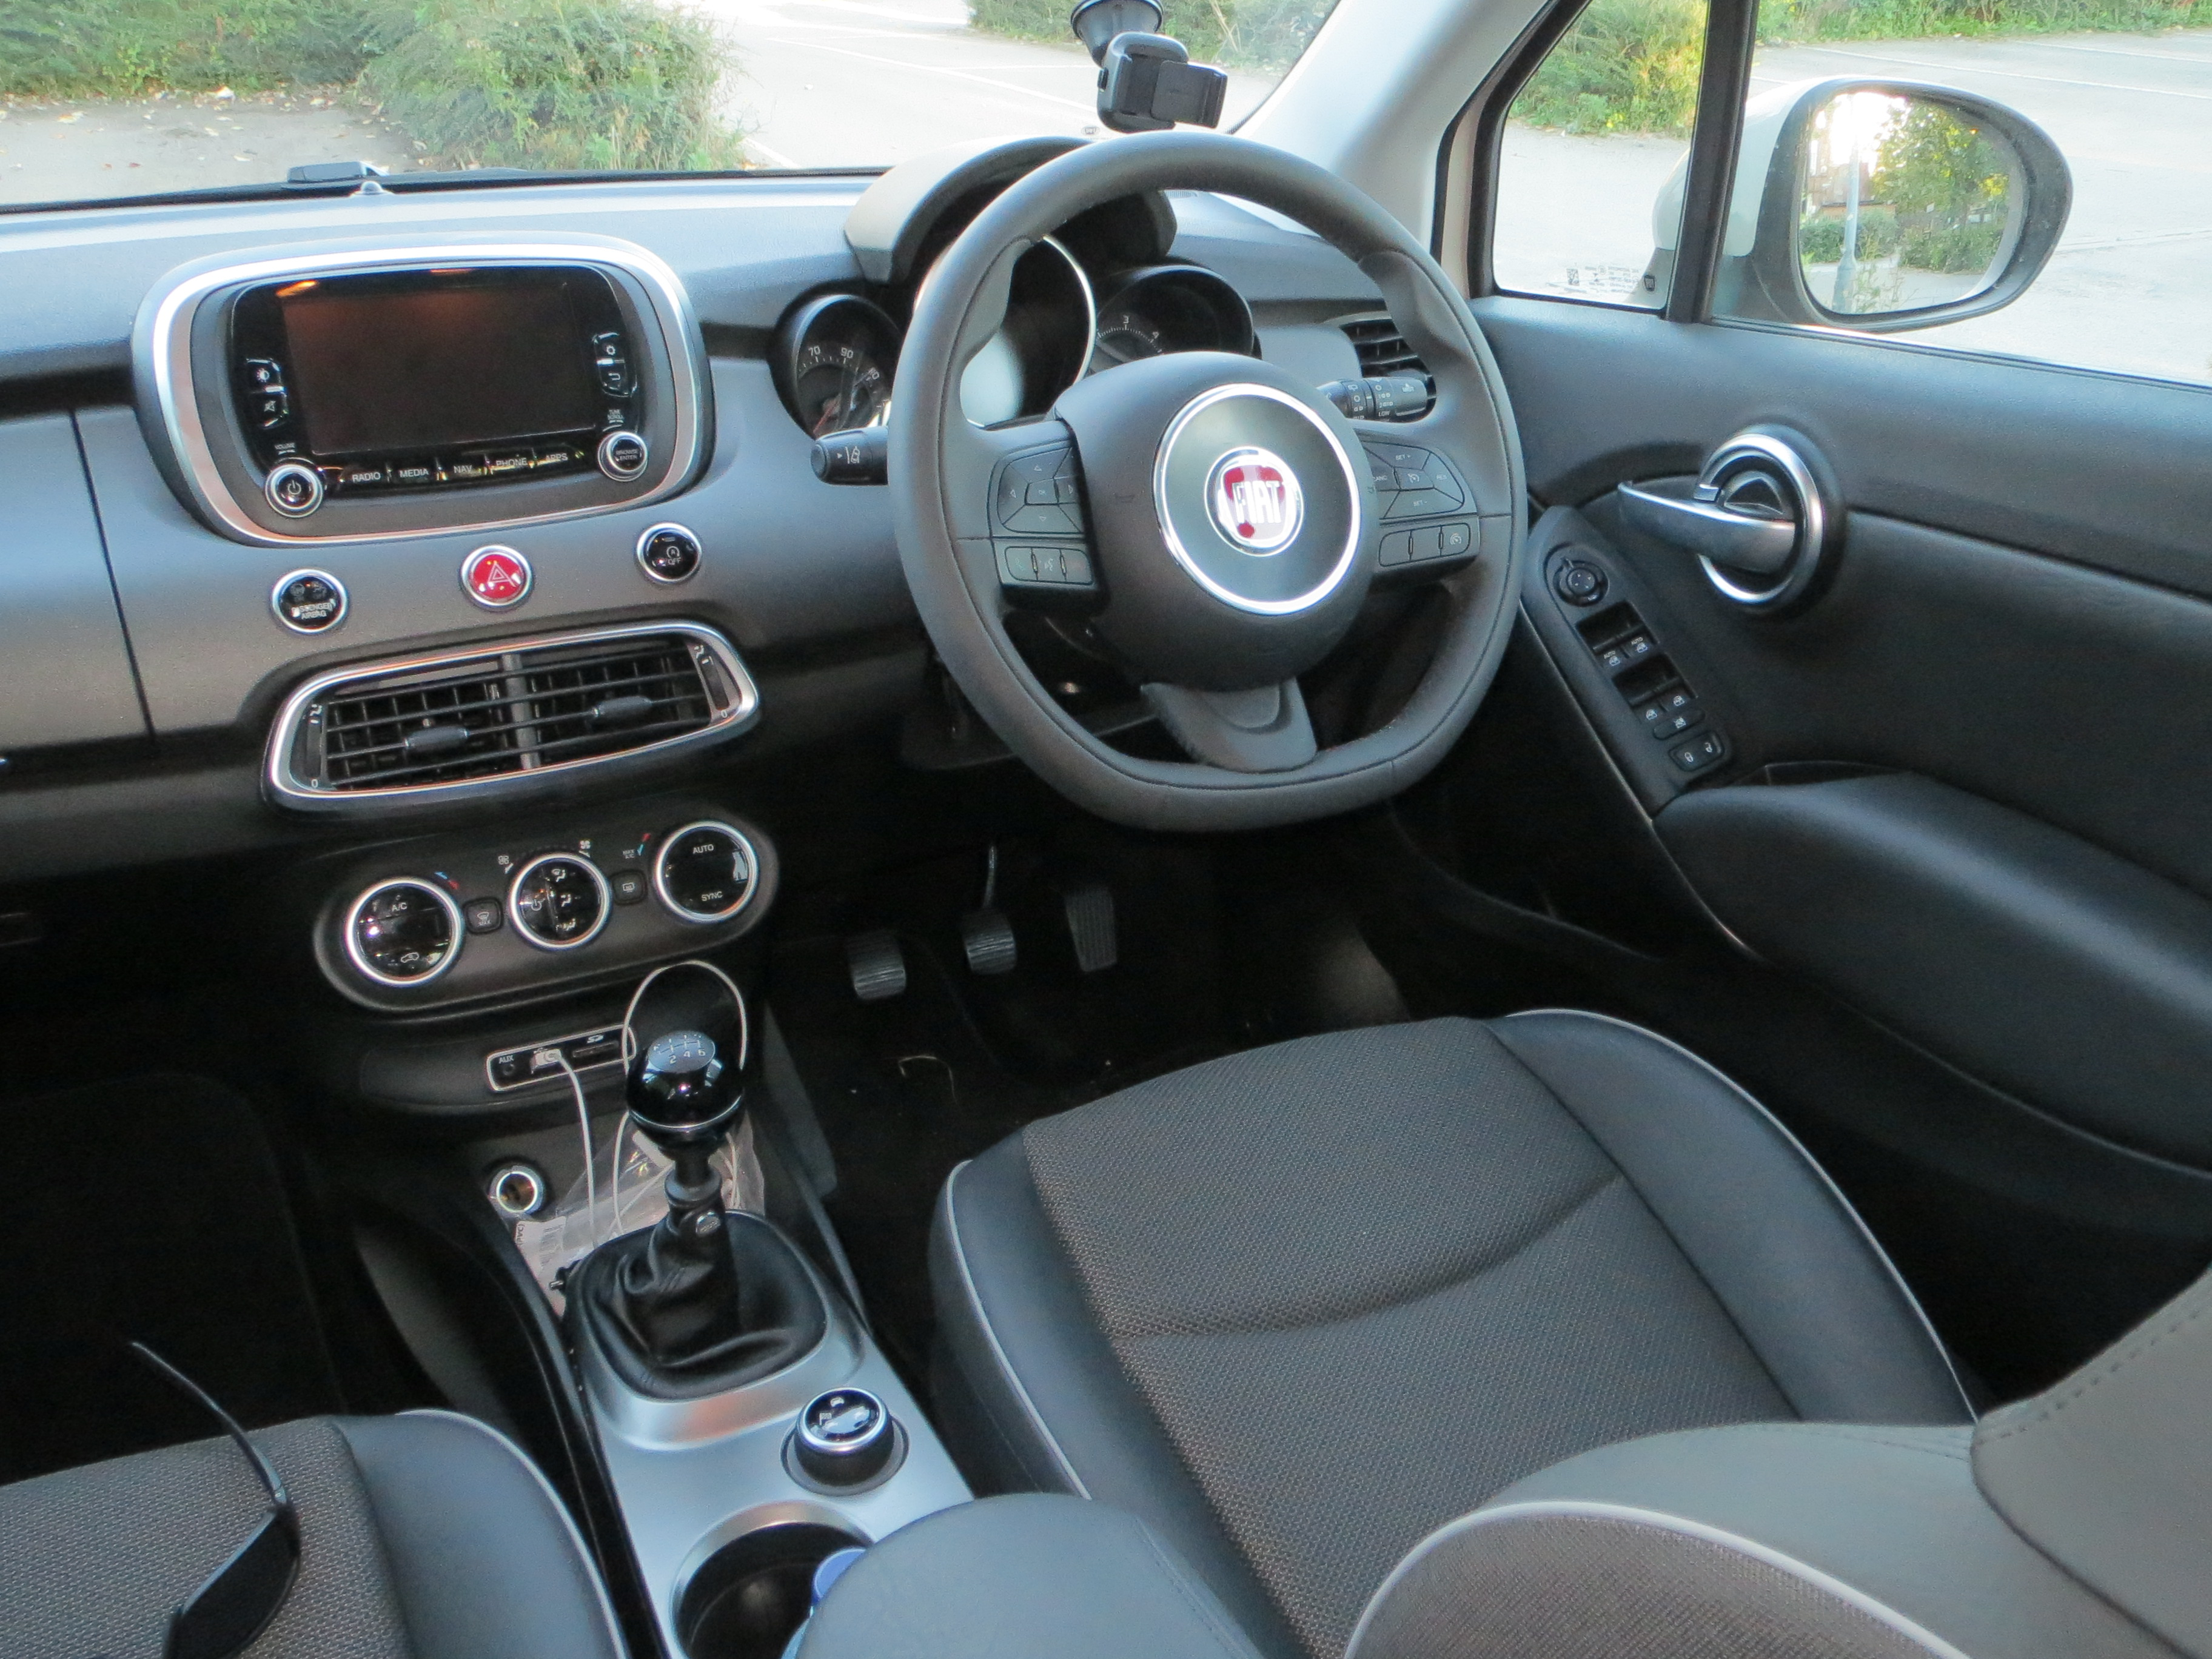 Fiat 500X 1 6 MultiJet 120hp Cross road test report and review